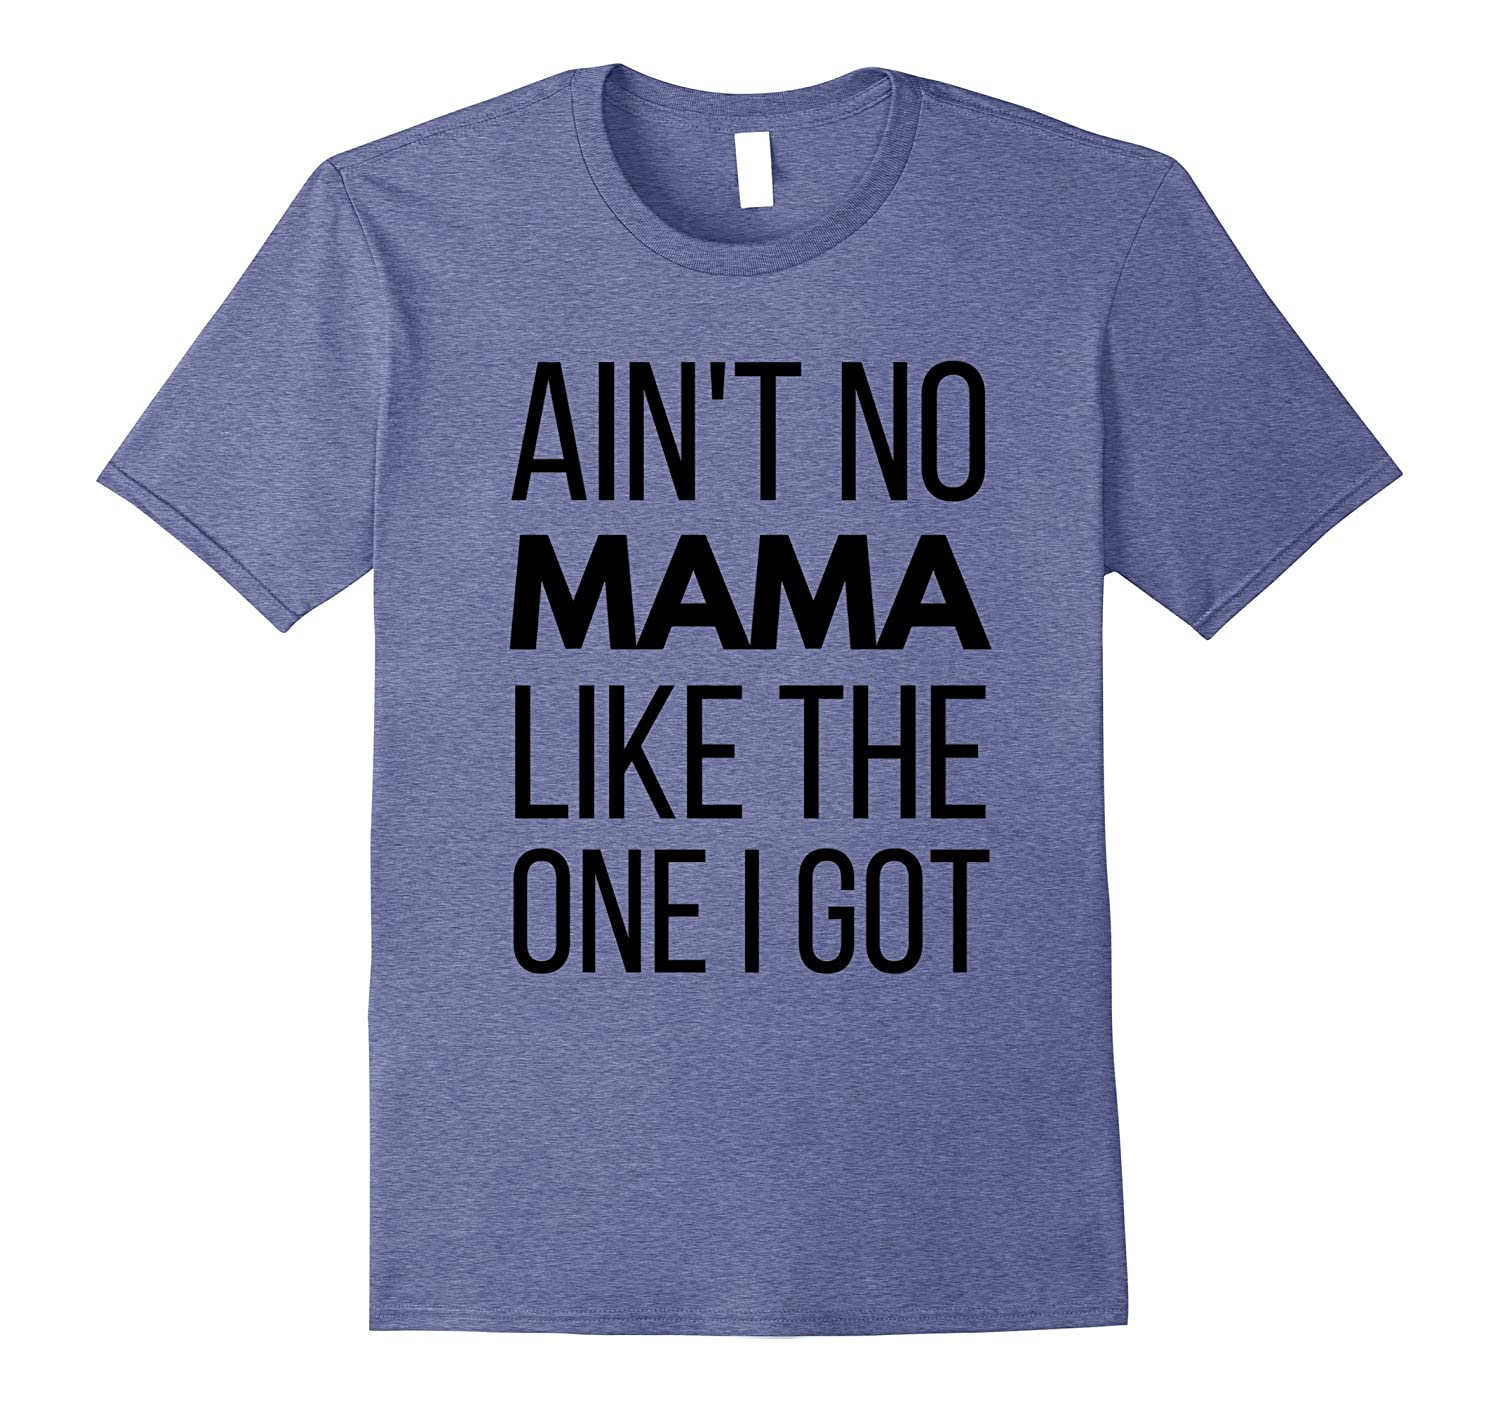 Ain't No Mama Love T-shirt Mothers Day Tee-alottee gift